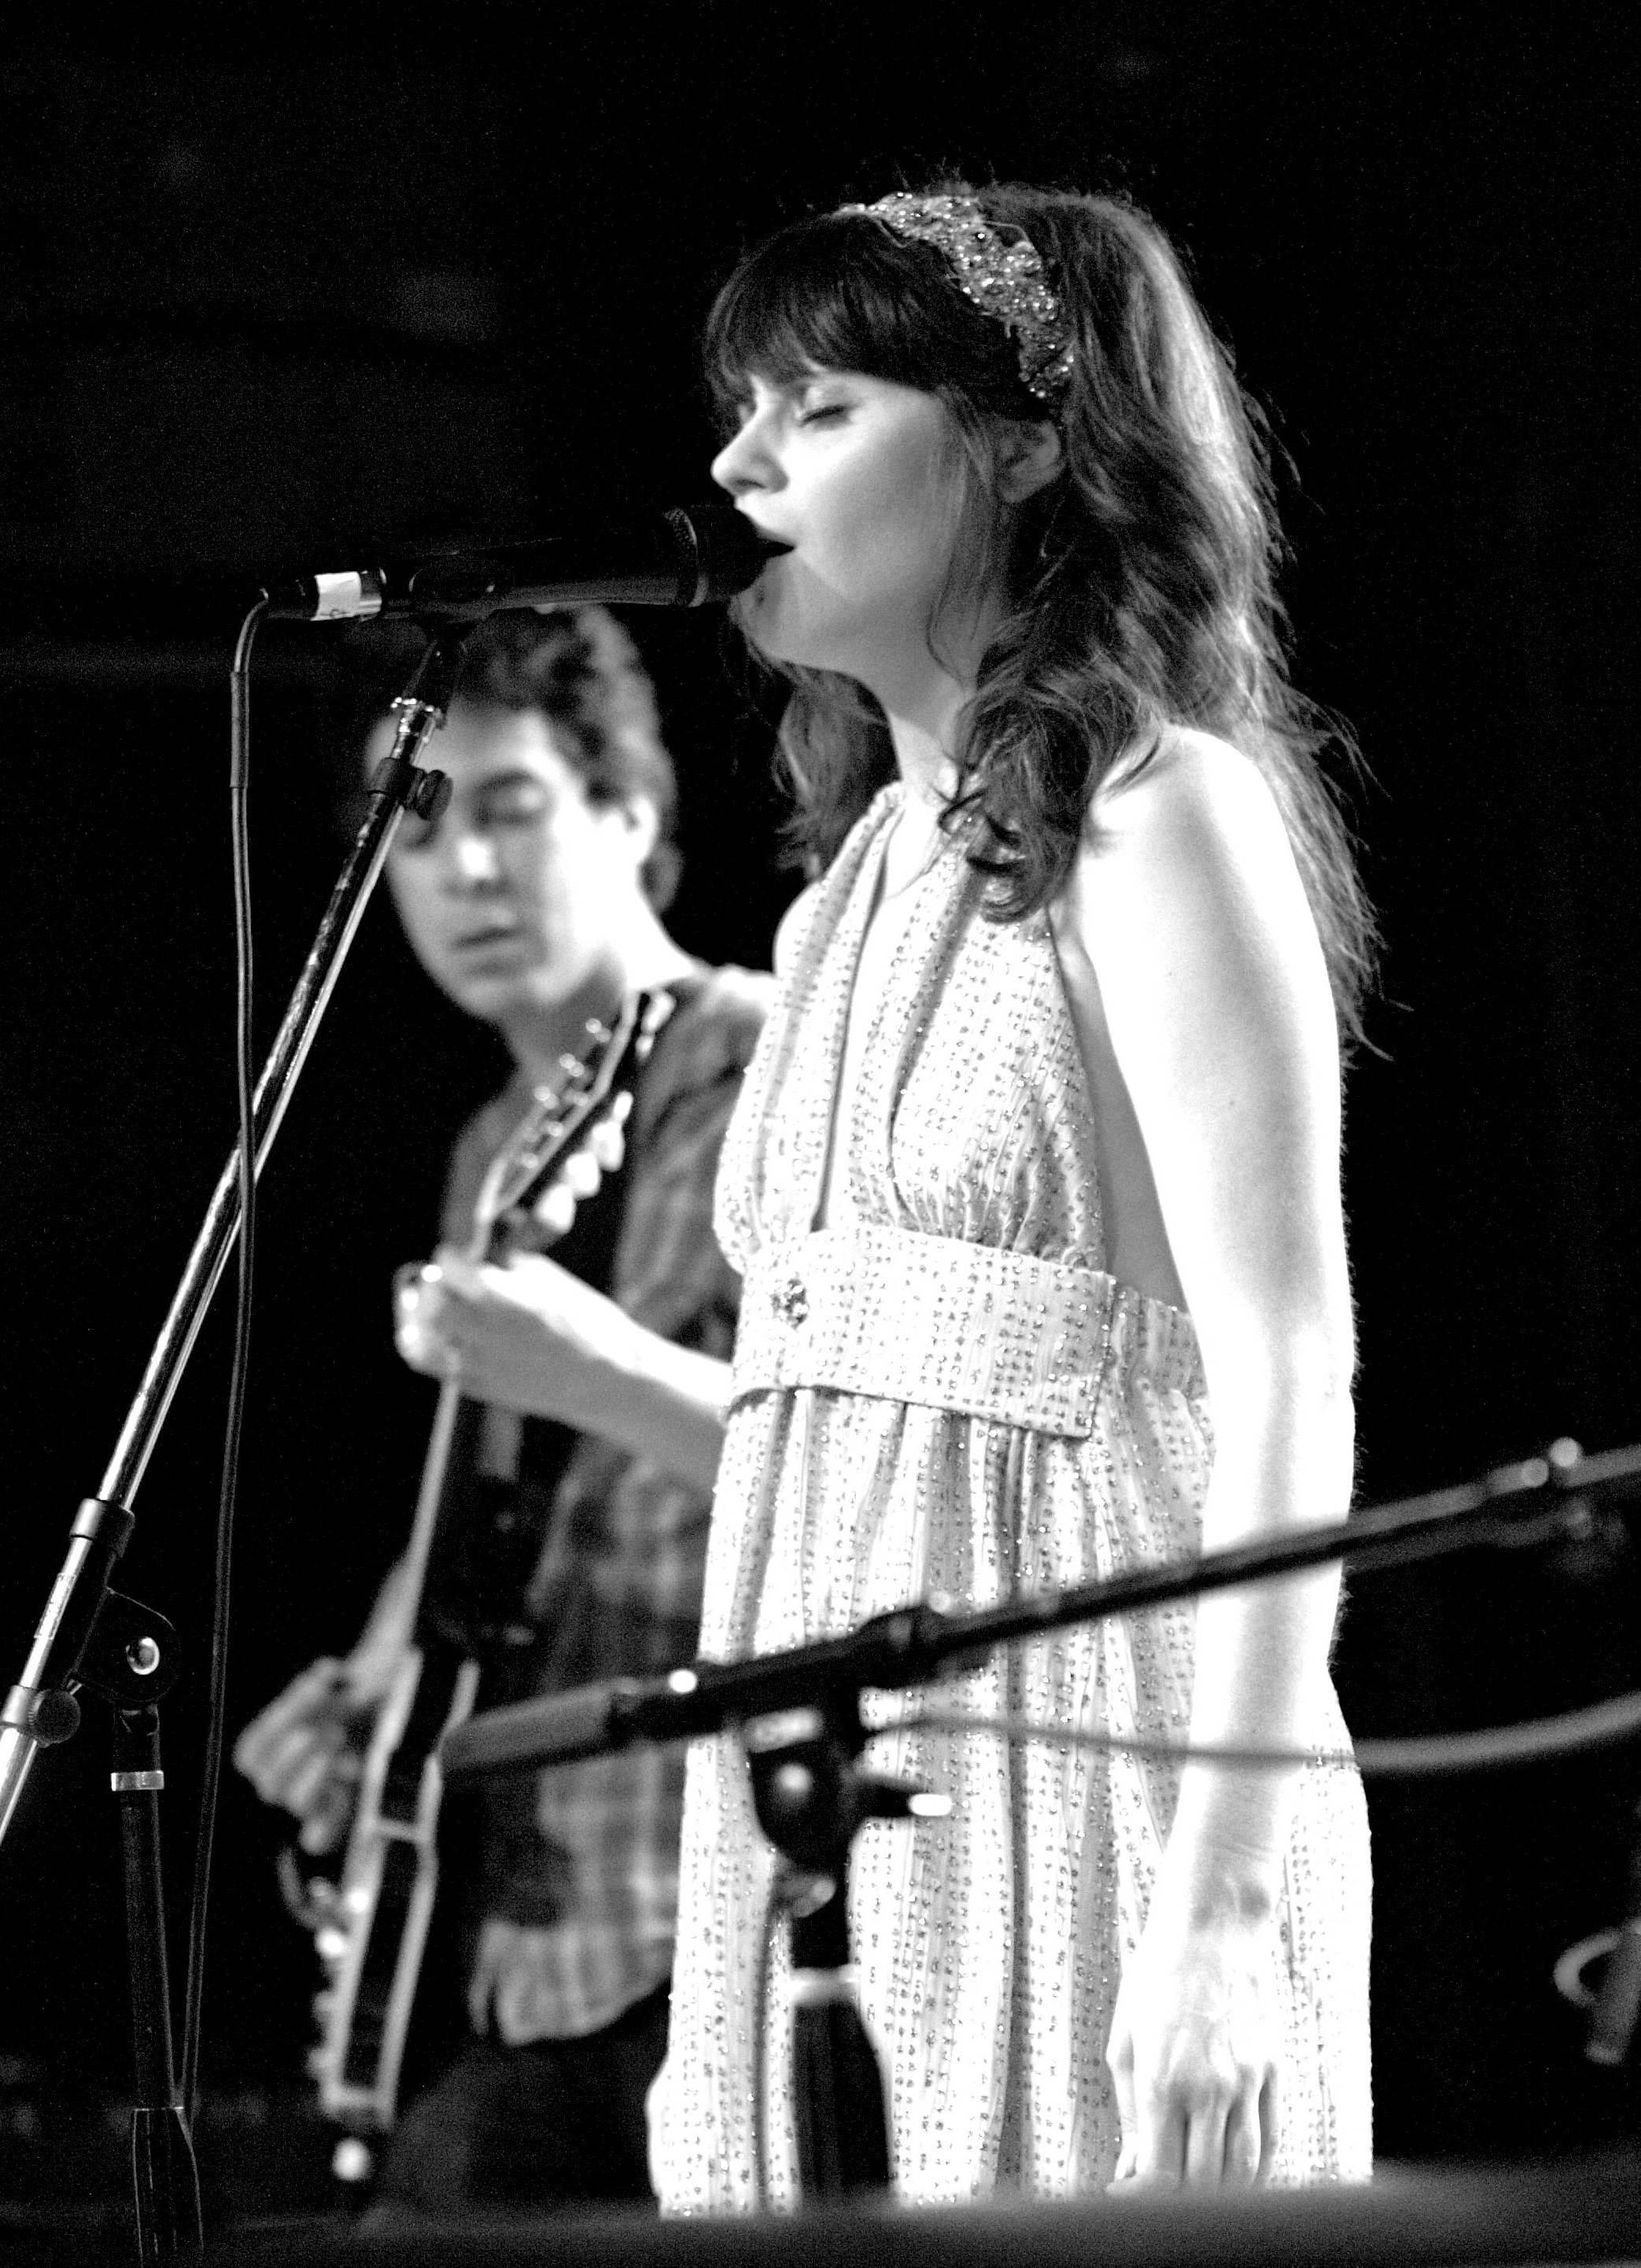 List of songs recorded by She & Him - Wikipedia